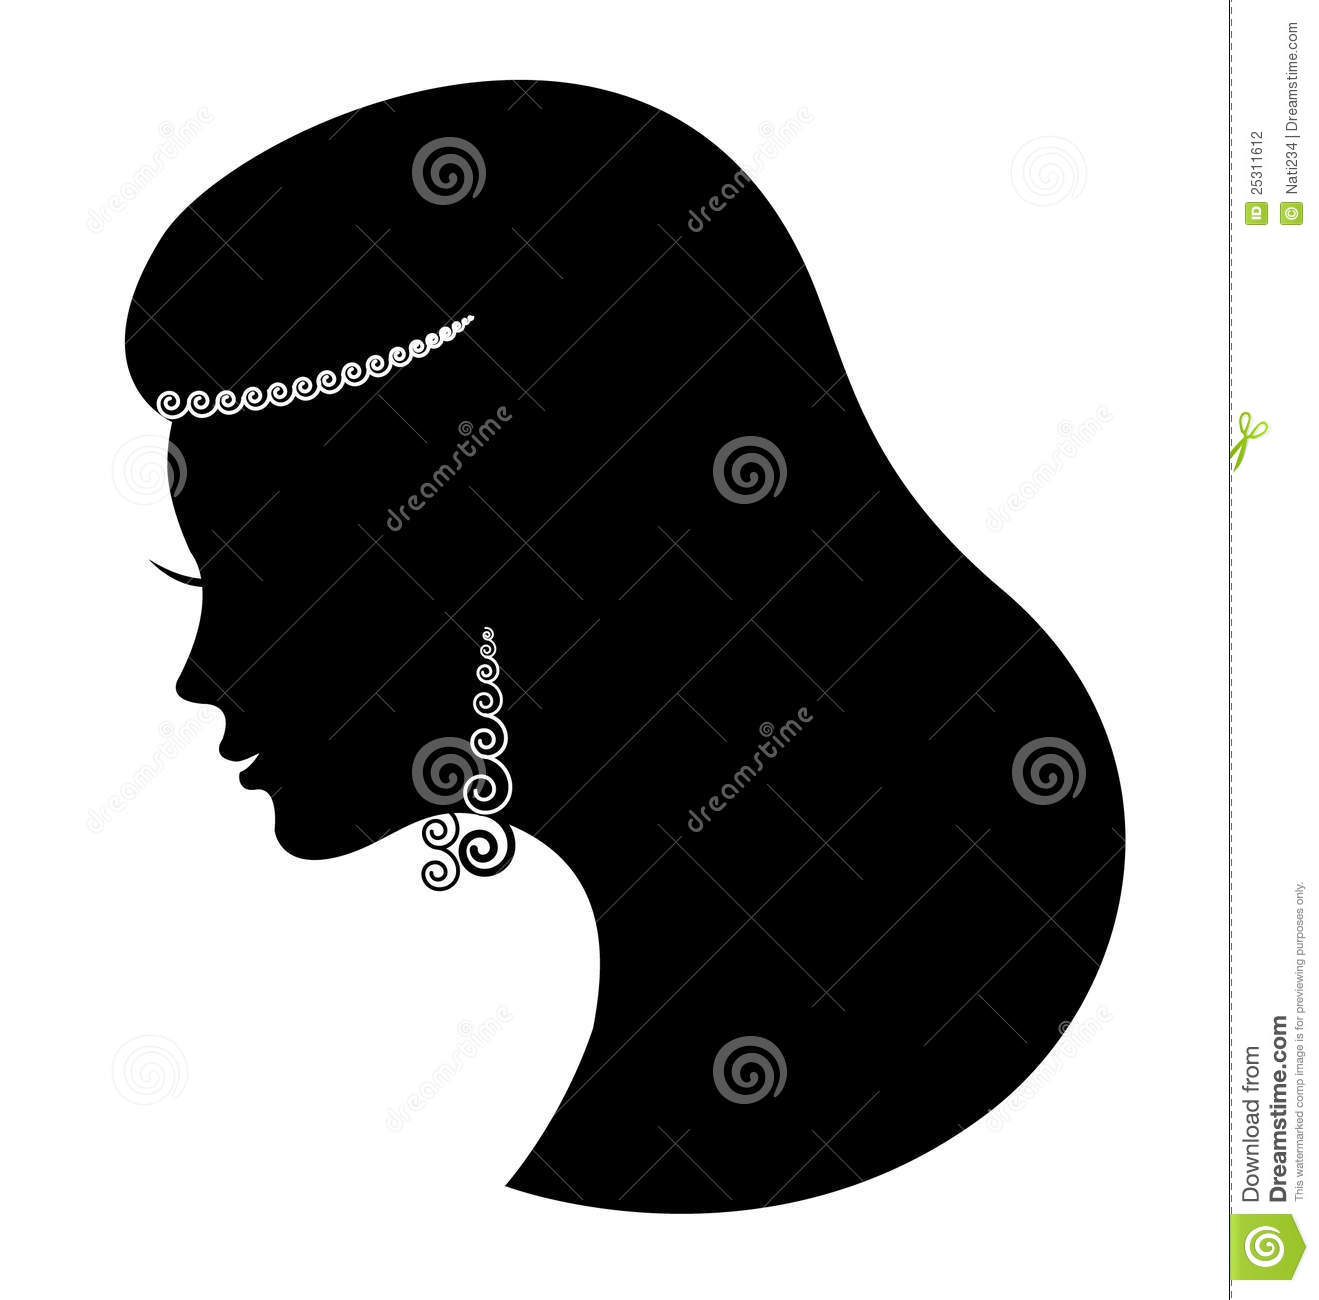 55779 Woman free clipart.